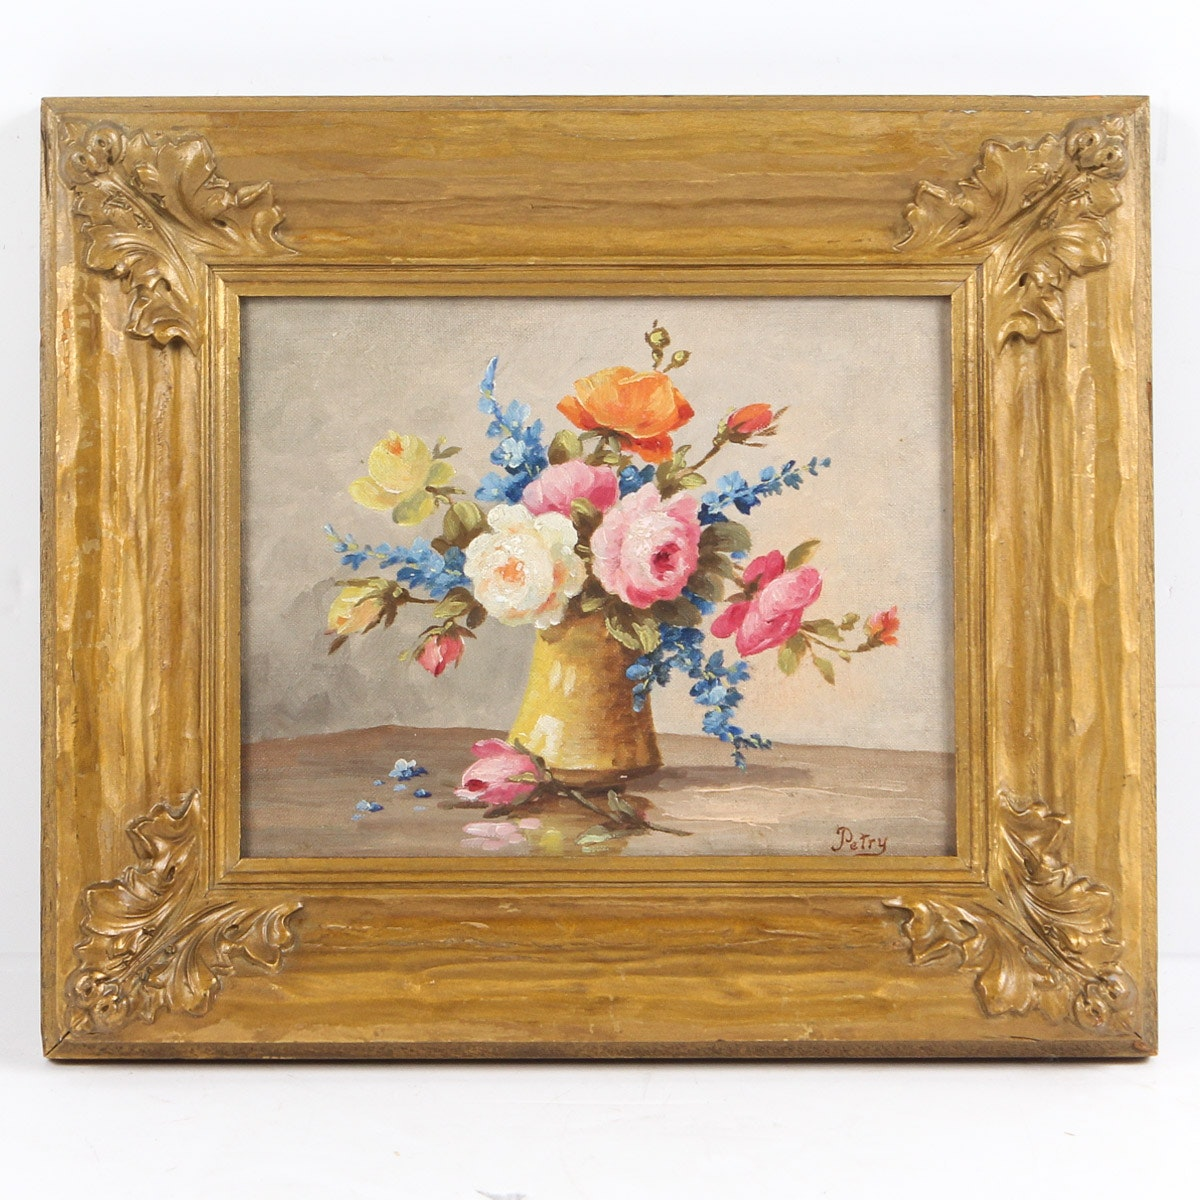 Victor Petry Oil on Canvas Board of Floral Still Life